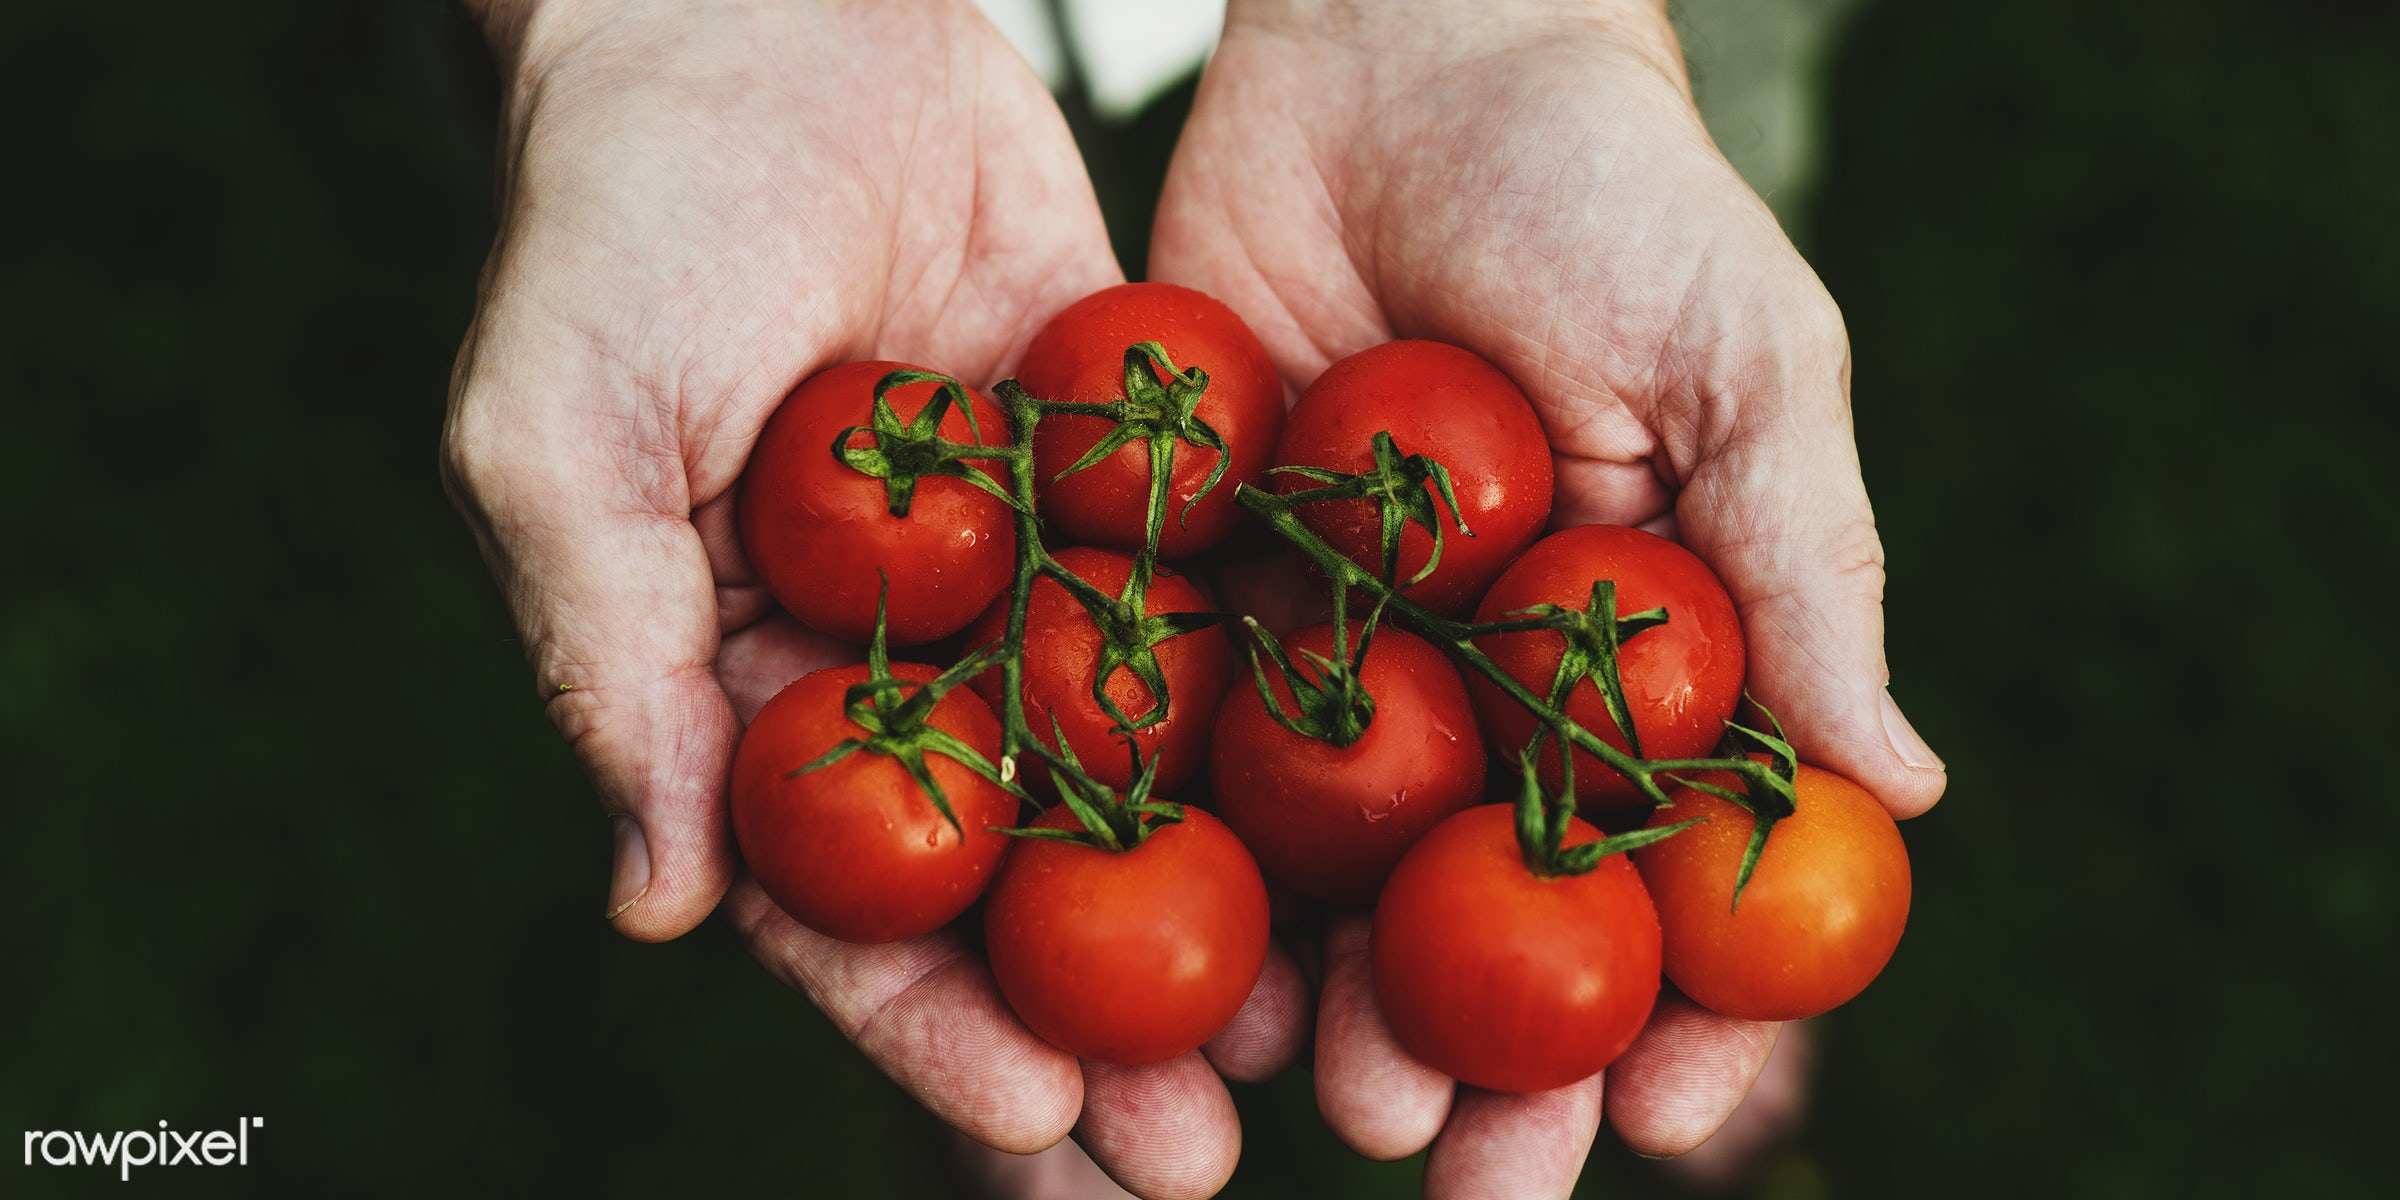 raw, holding, farm, nature, hands, fresh, veggie, closeup, tomatoes, organic, healthy, harvest, vegetable, produce